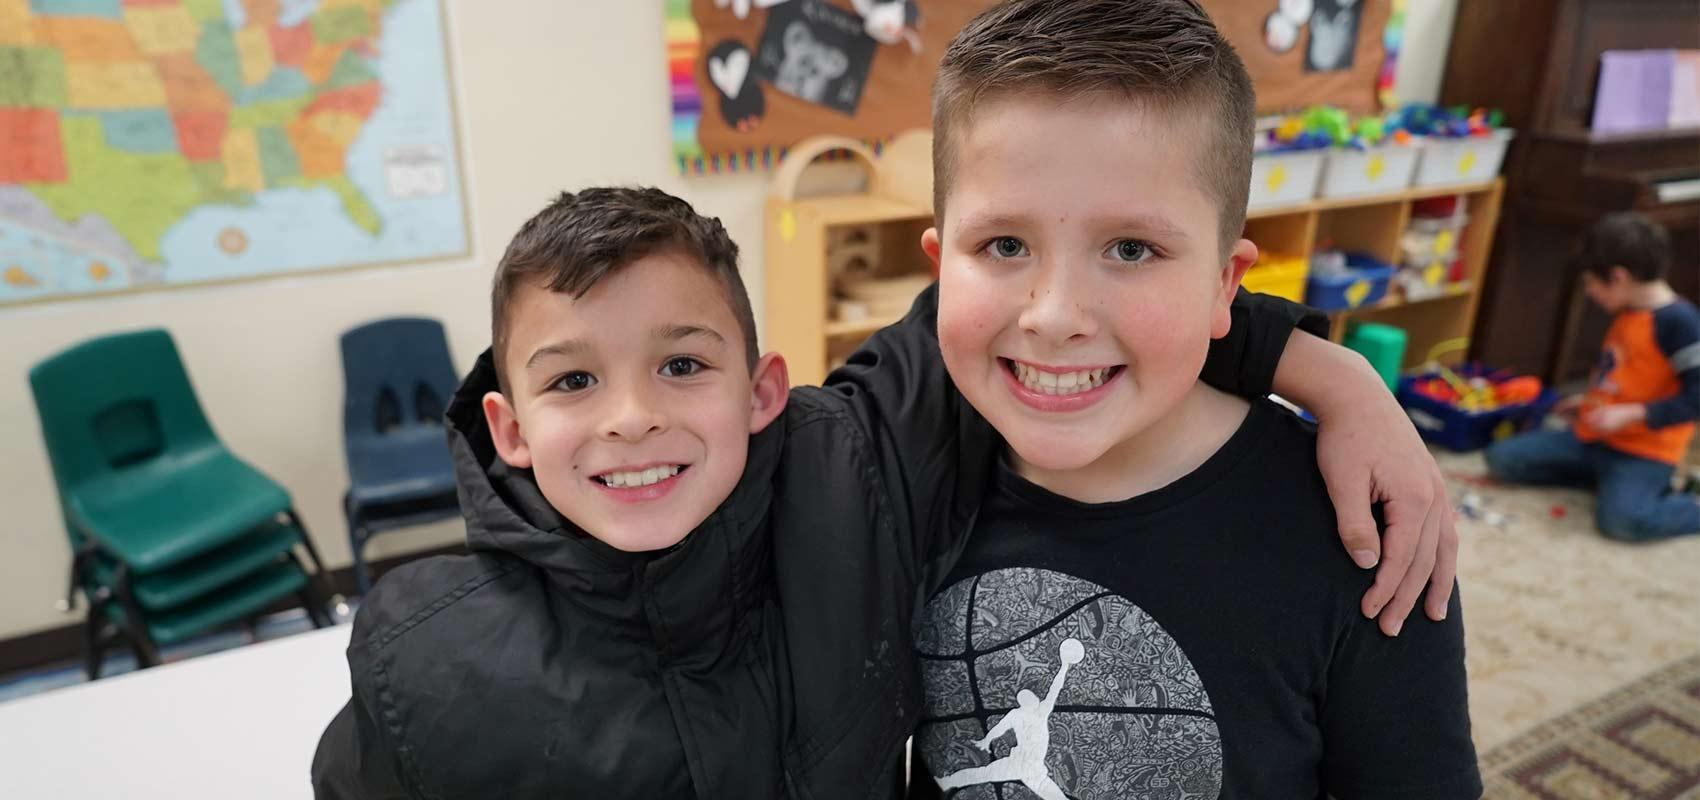 Two boys smiling in a classroom